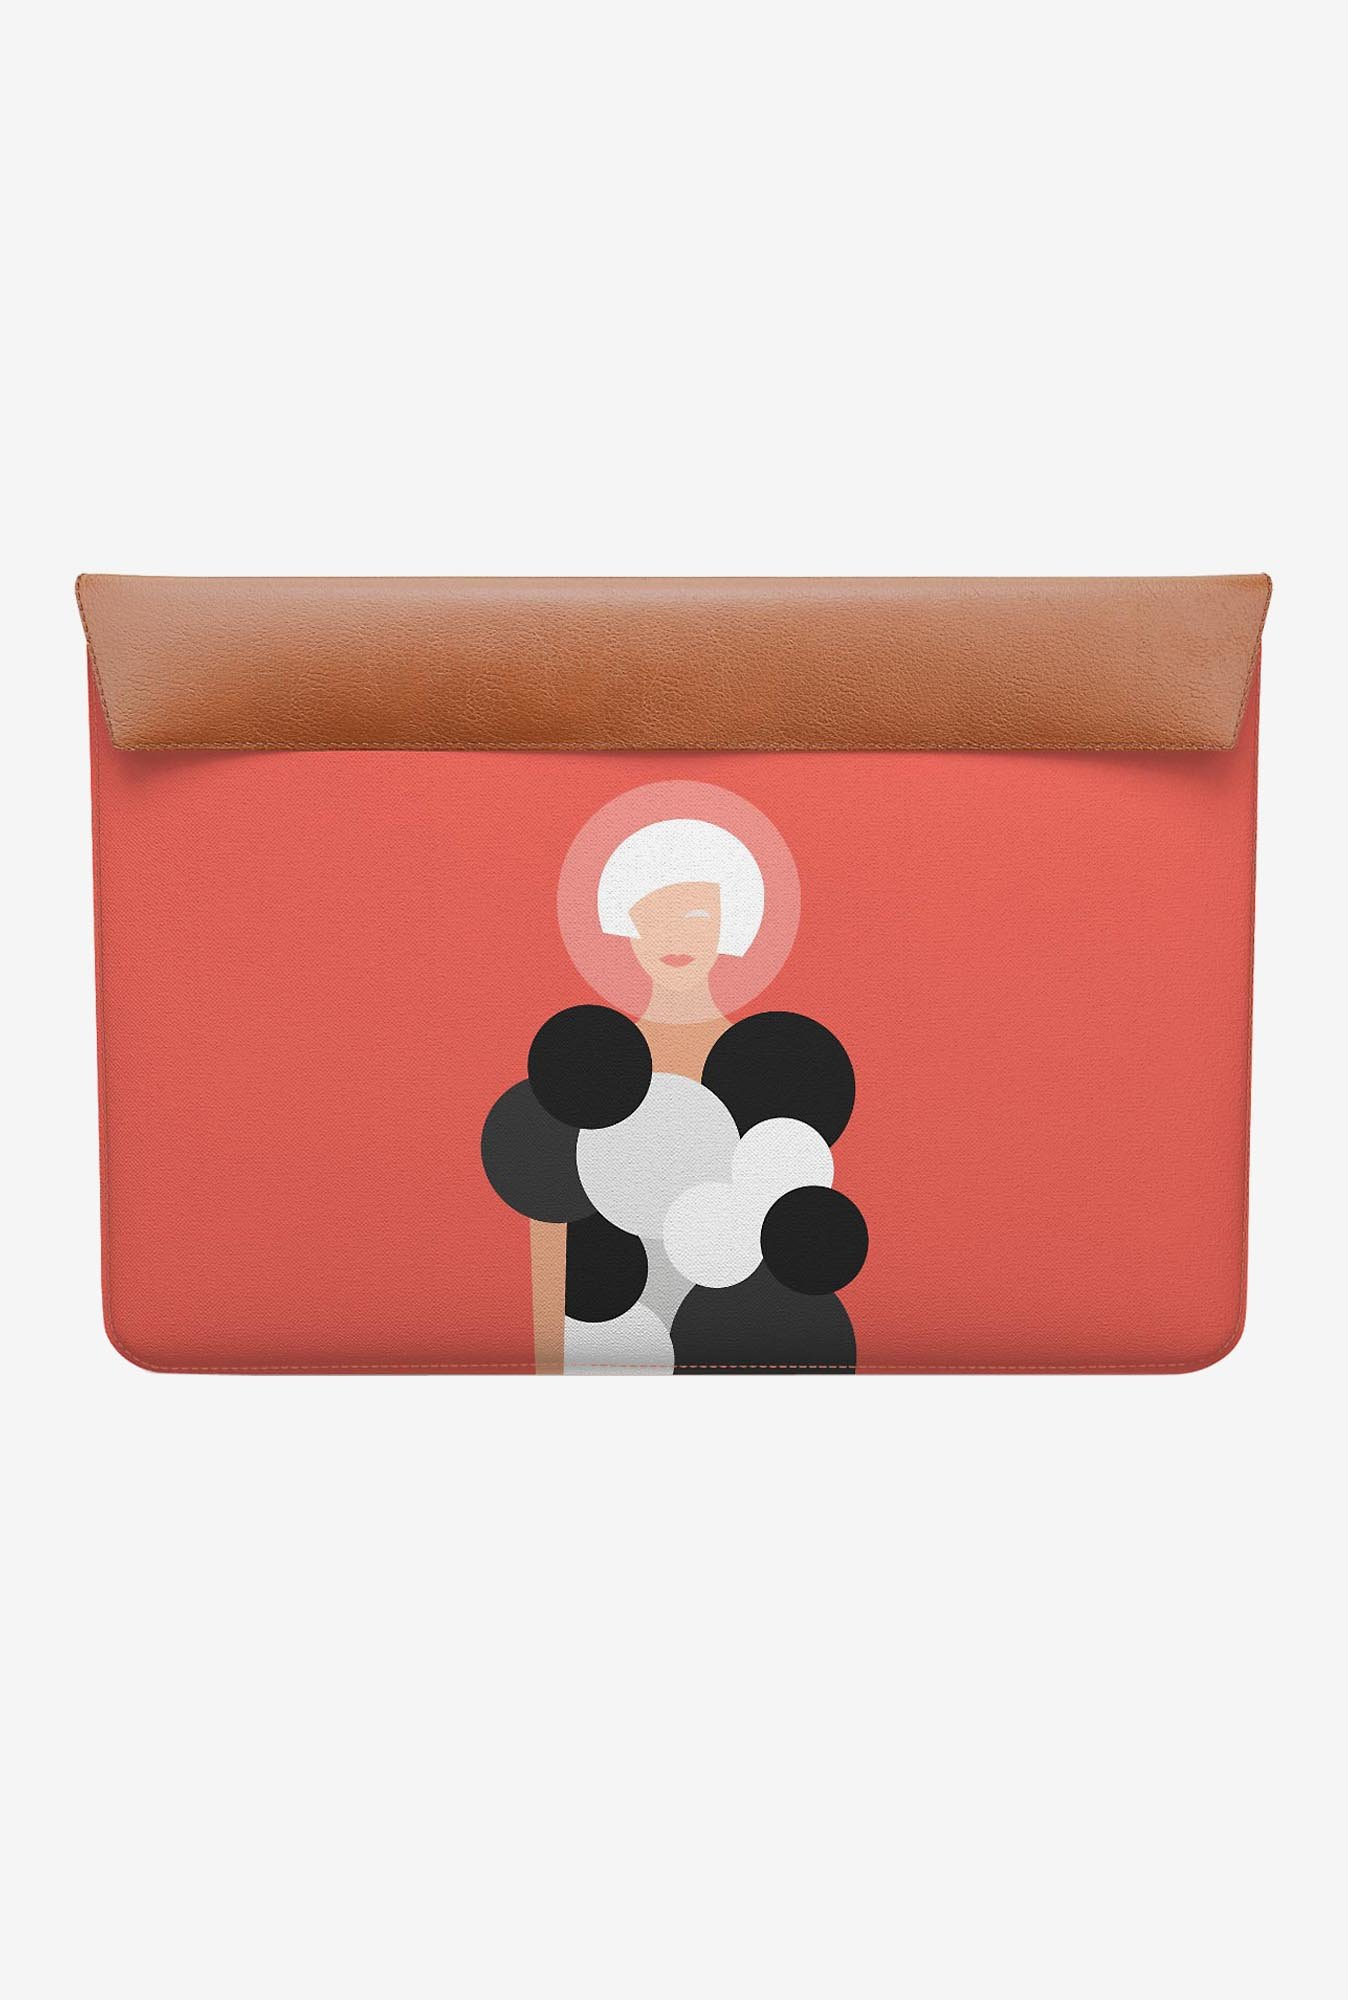 DailyObjects Space Helmet MacBook Pro 13 Envelope Sleeve